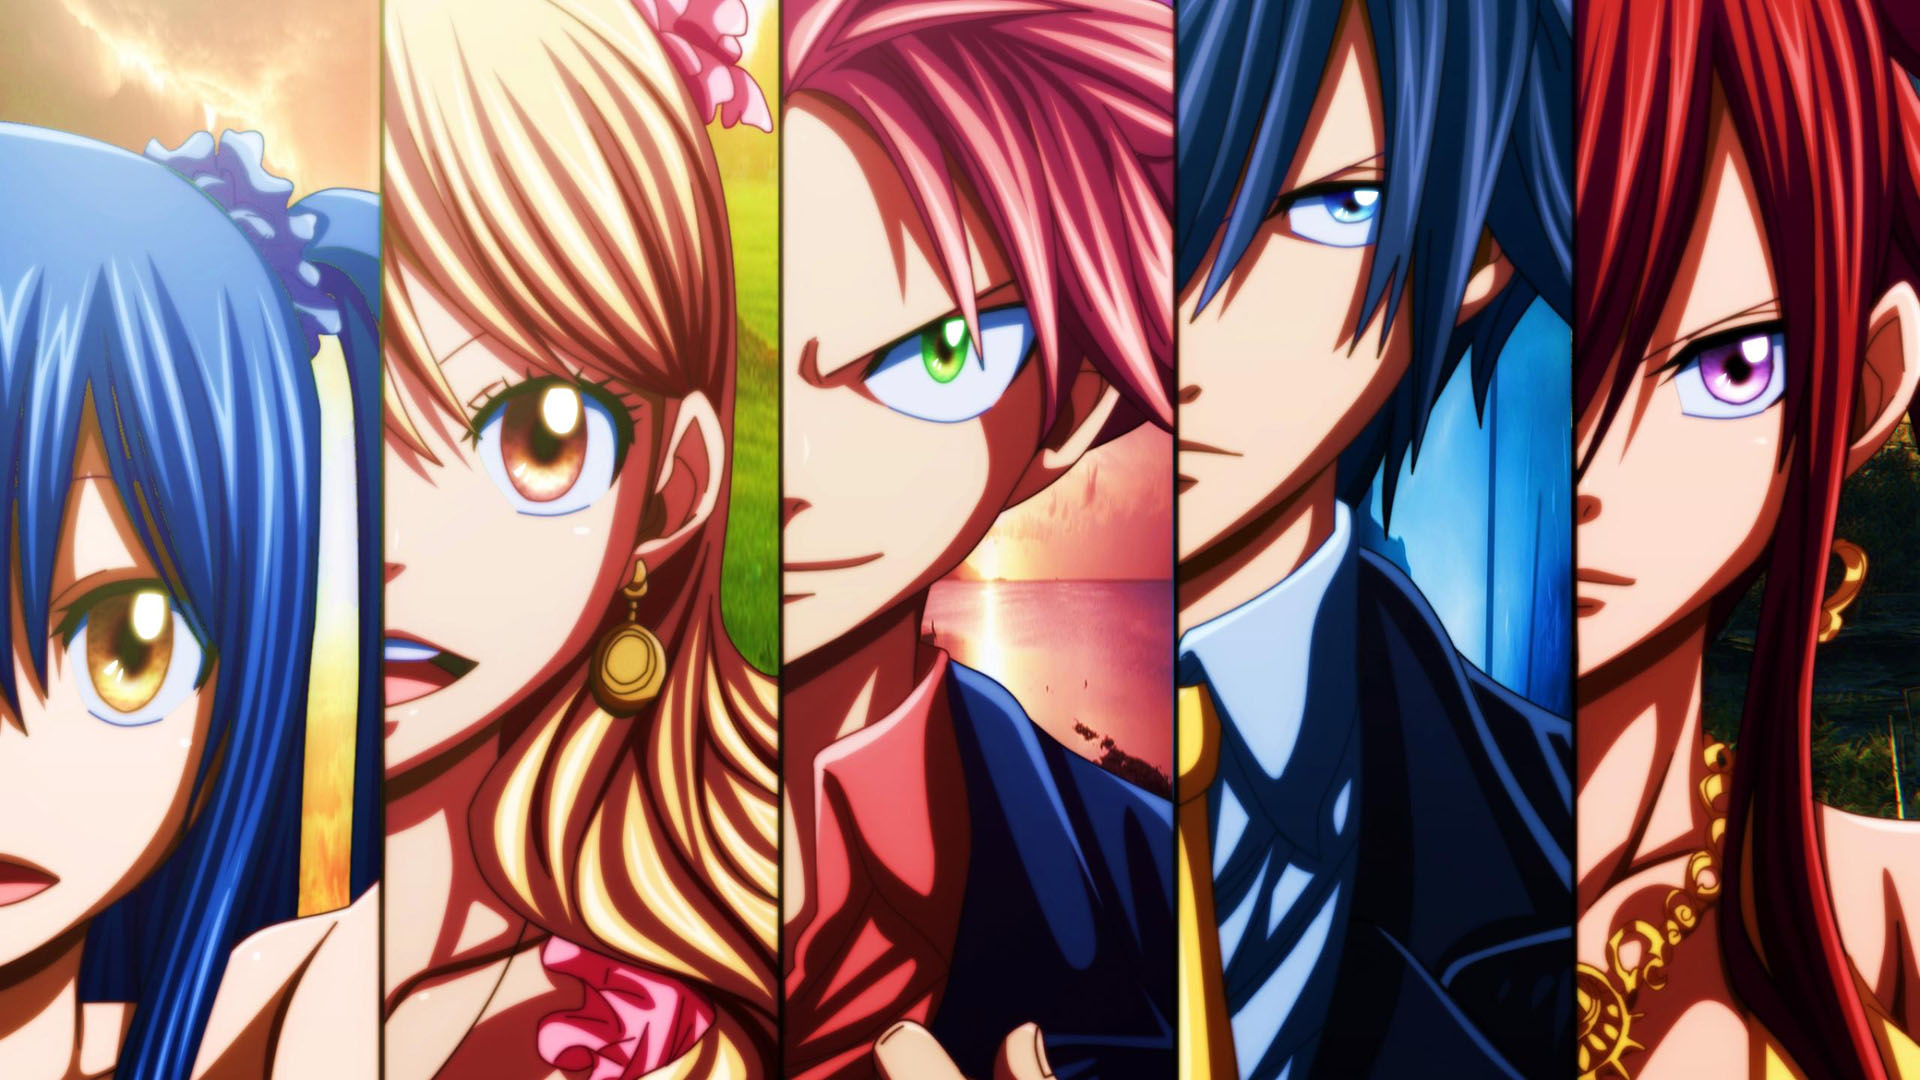 fairy tail 壁紙 fairy tail 壁紙 hd hd fairy tail 壁紙